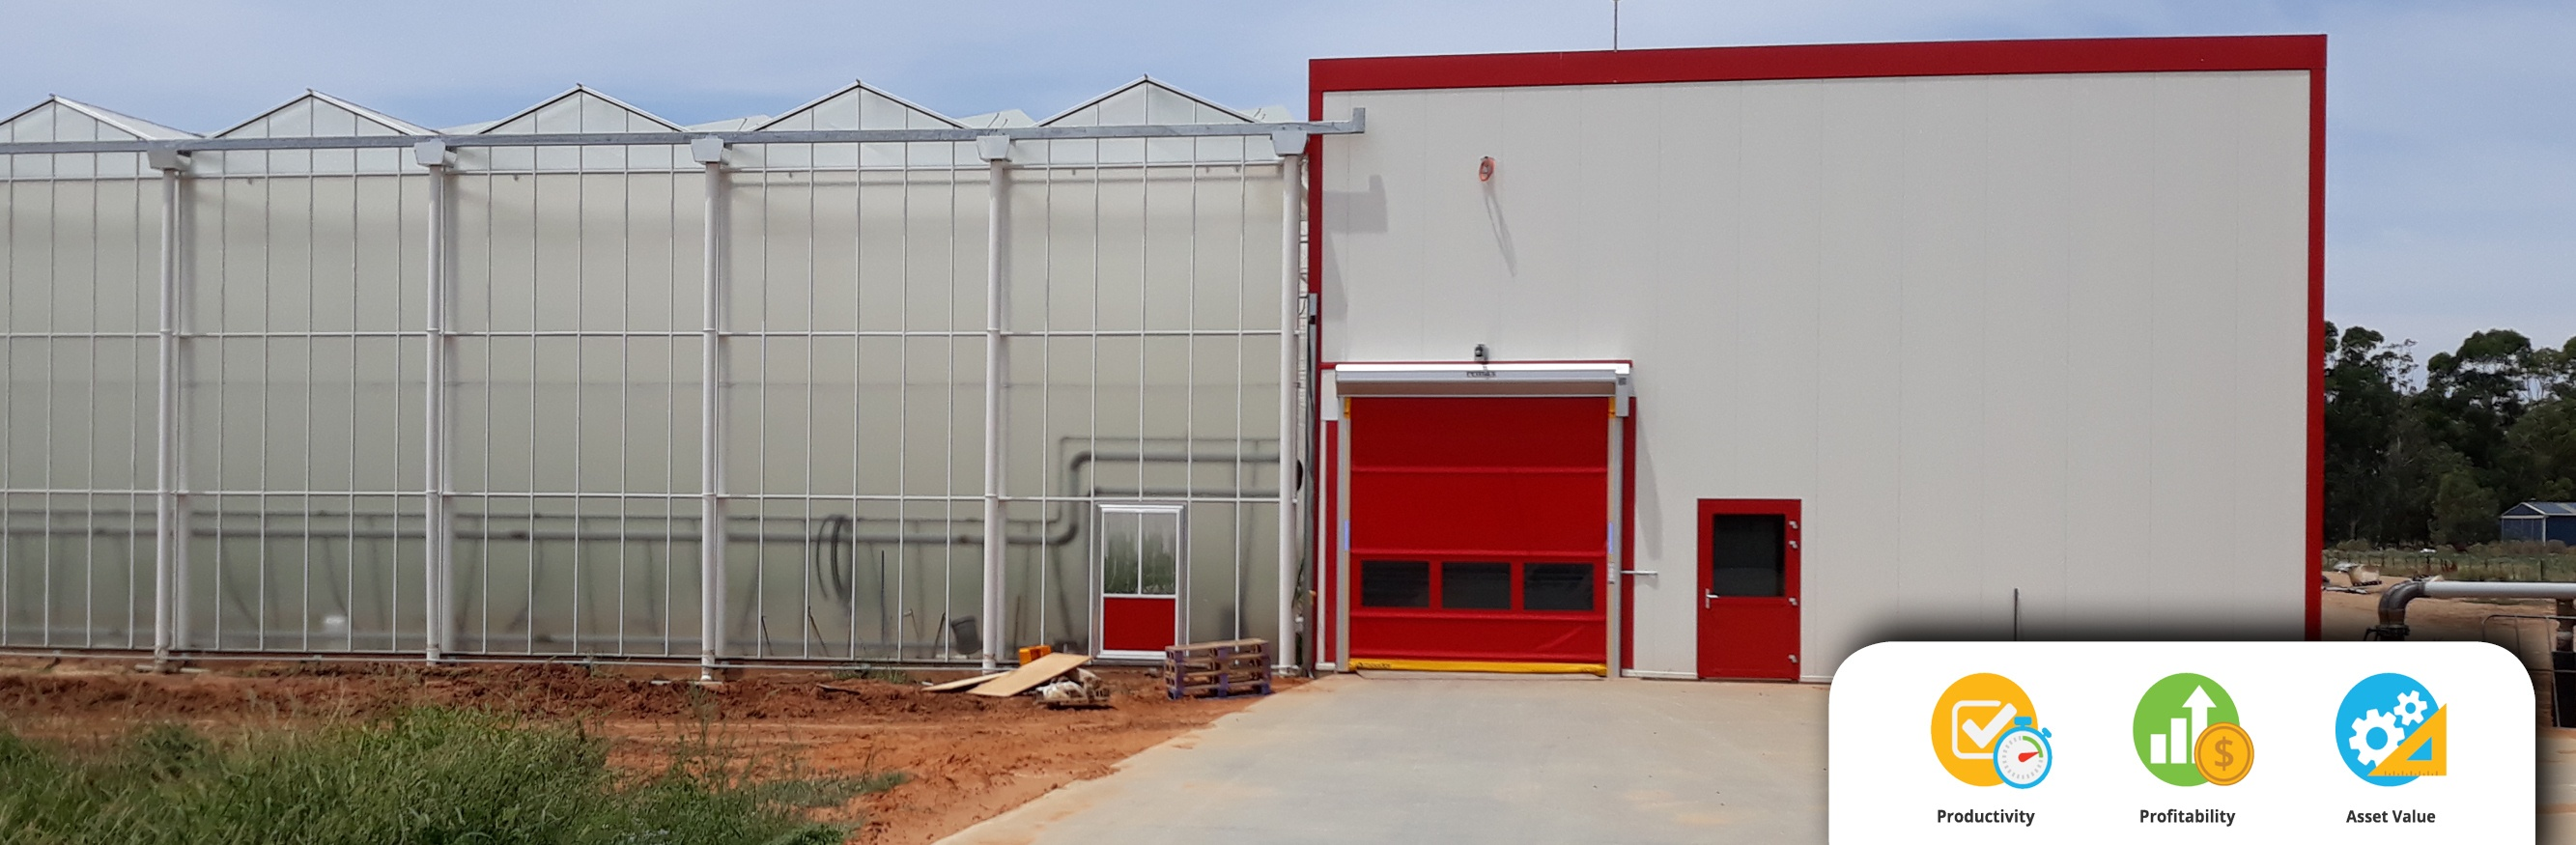 Movidor Rapid Door at Hydroponic Greenhouse